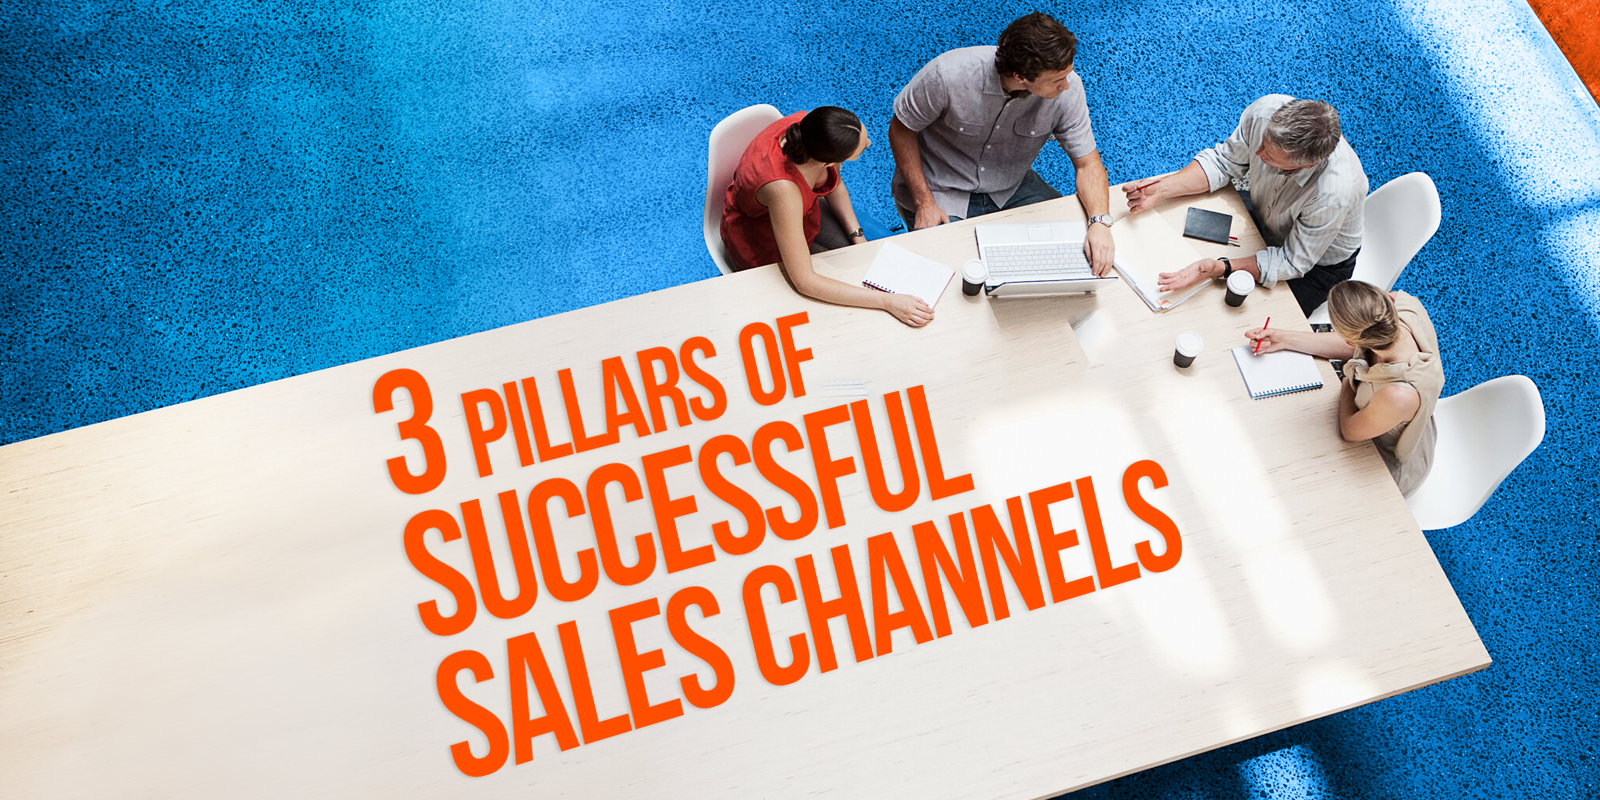 3 Pillars Of Successful Sales Channels!